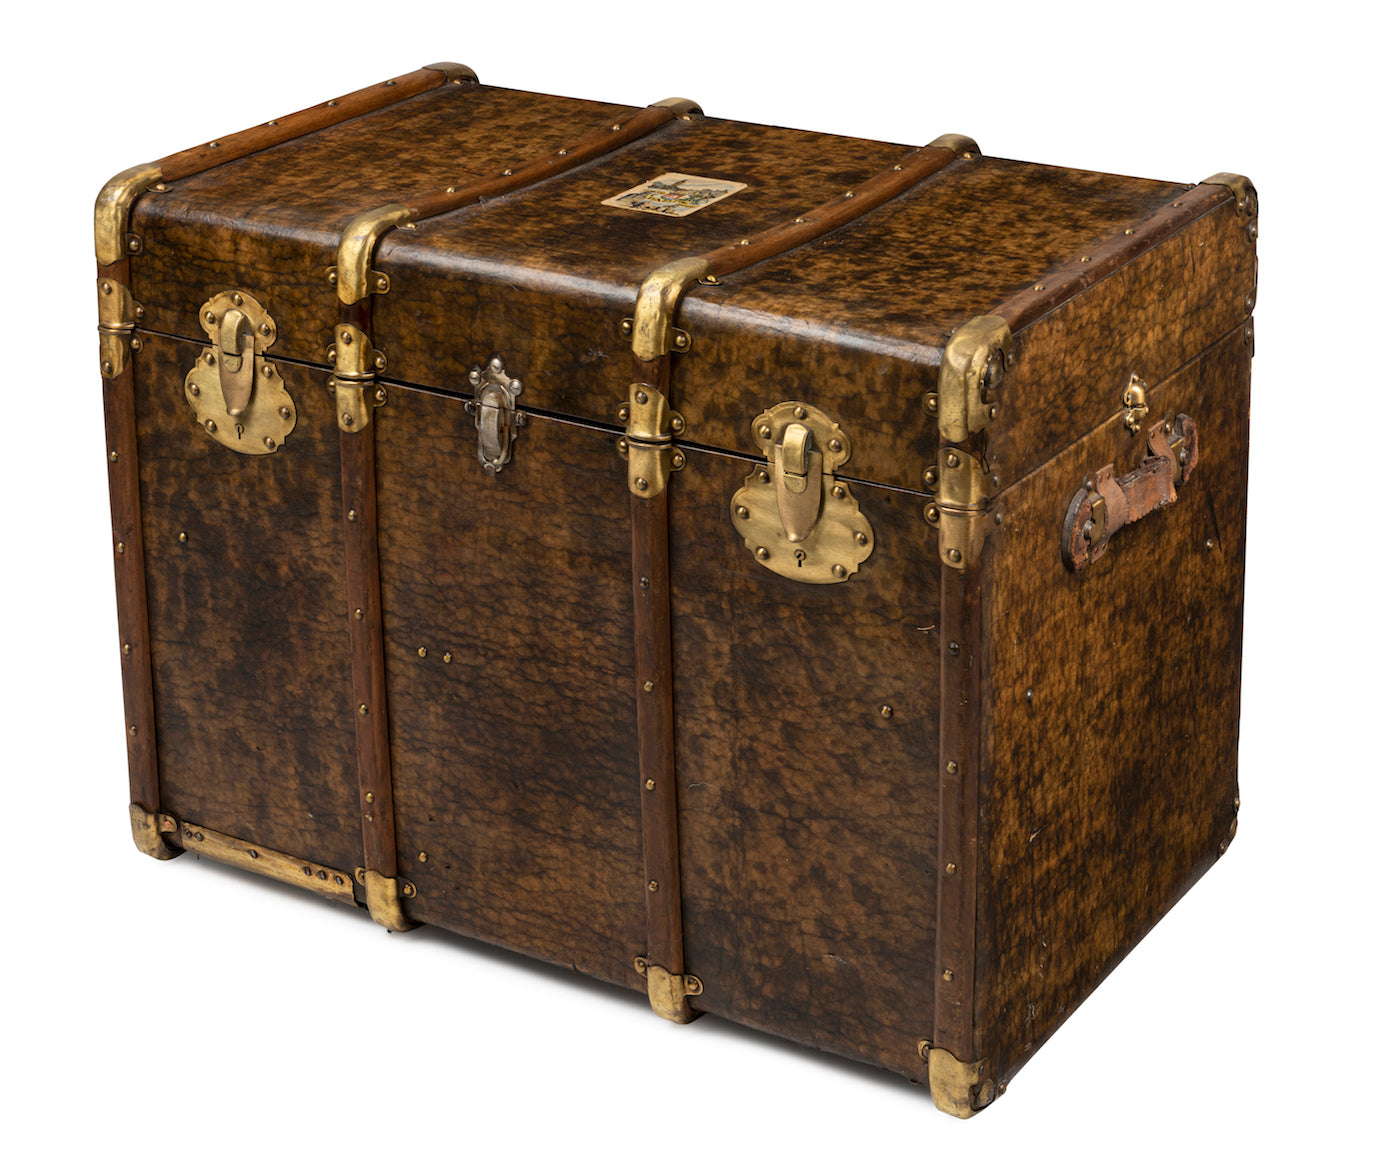 A stylish tortoiseshell leather, timber and brass bound travelling trunk, French Circa 1890